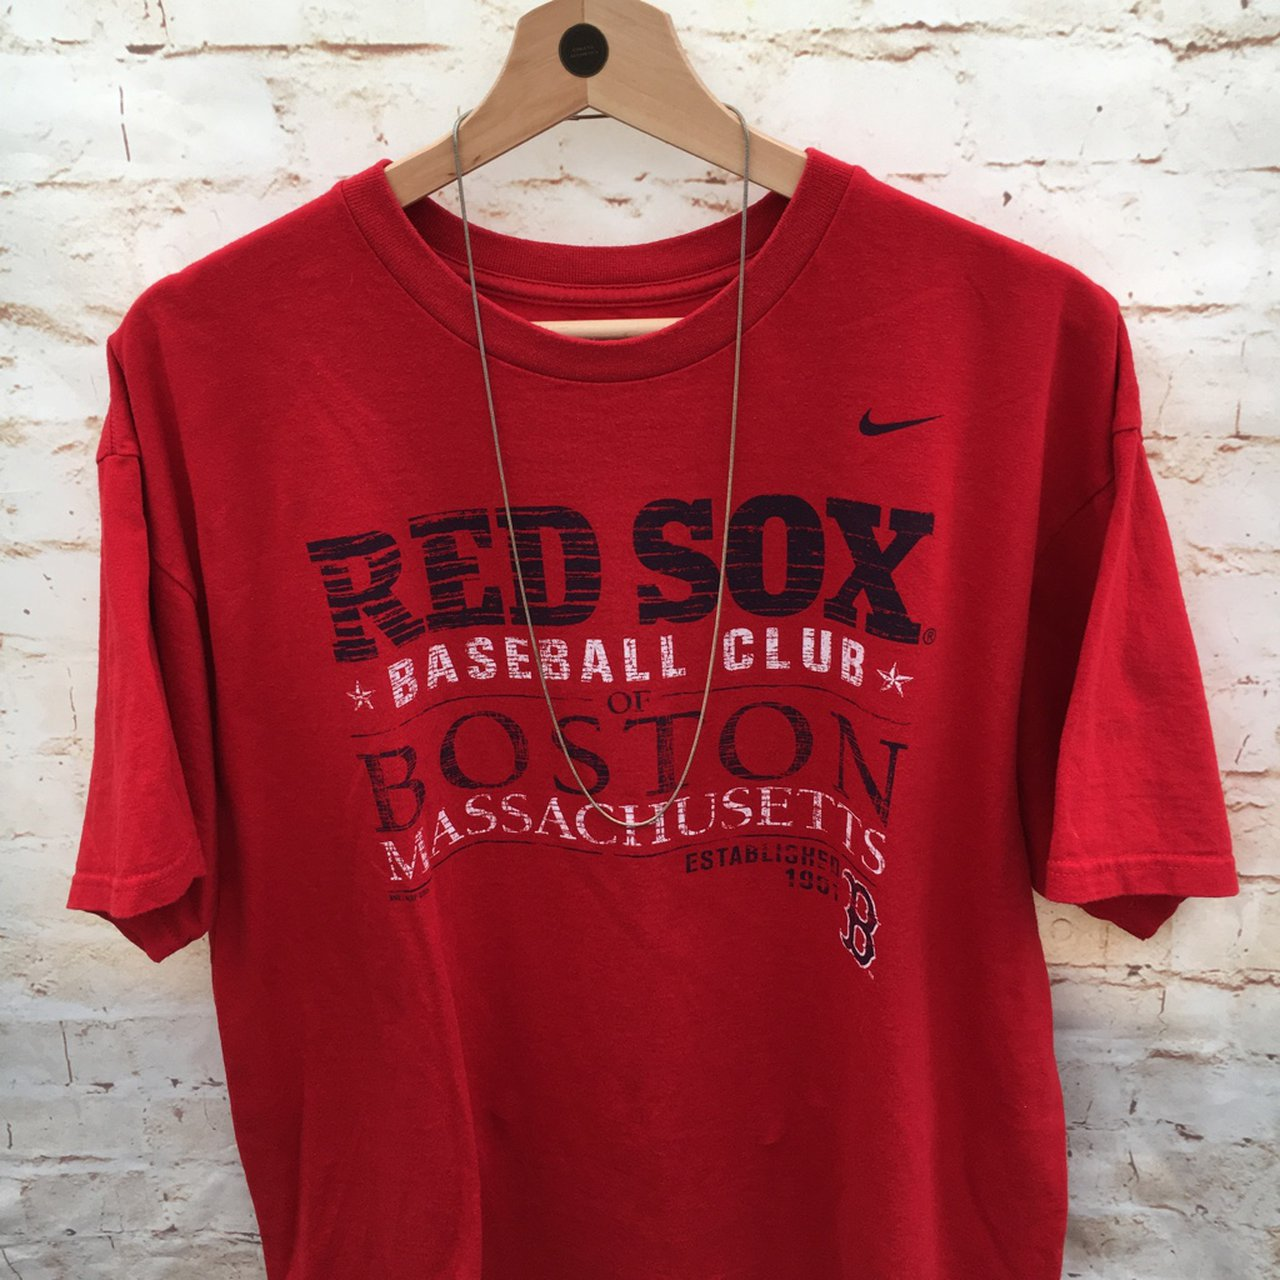 aaebf59d Mens Red Sox T Shirts - DREAMWORKS